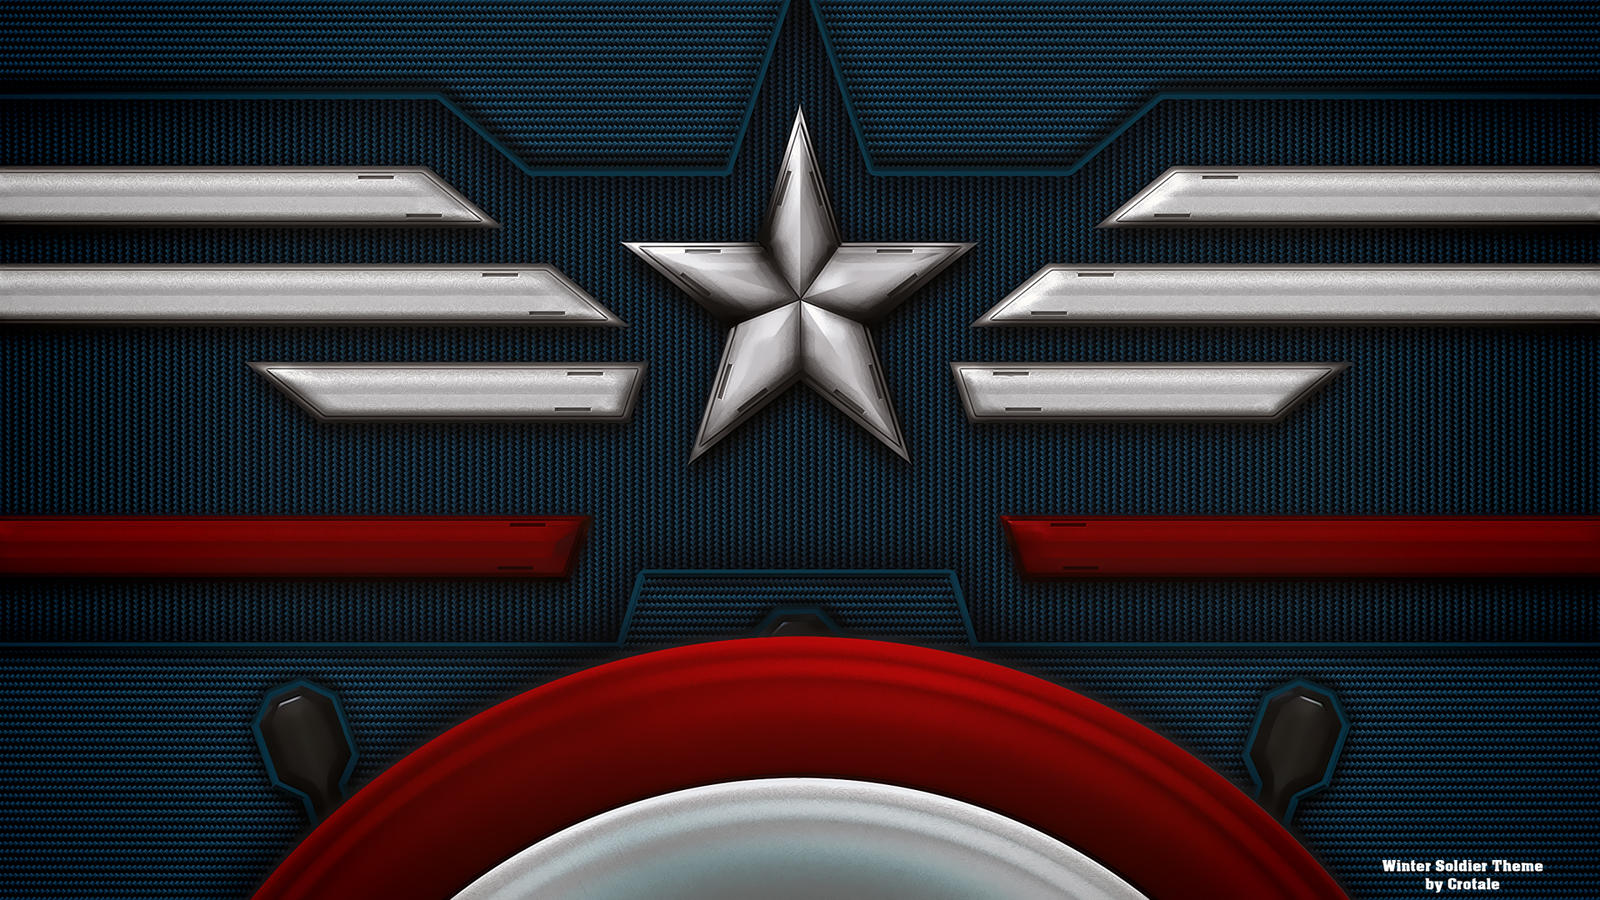 captain america winter soldier theme by crotale on deviantart. Black Bedroom Furniture Sets. Home Design Ideas